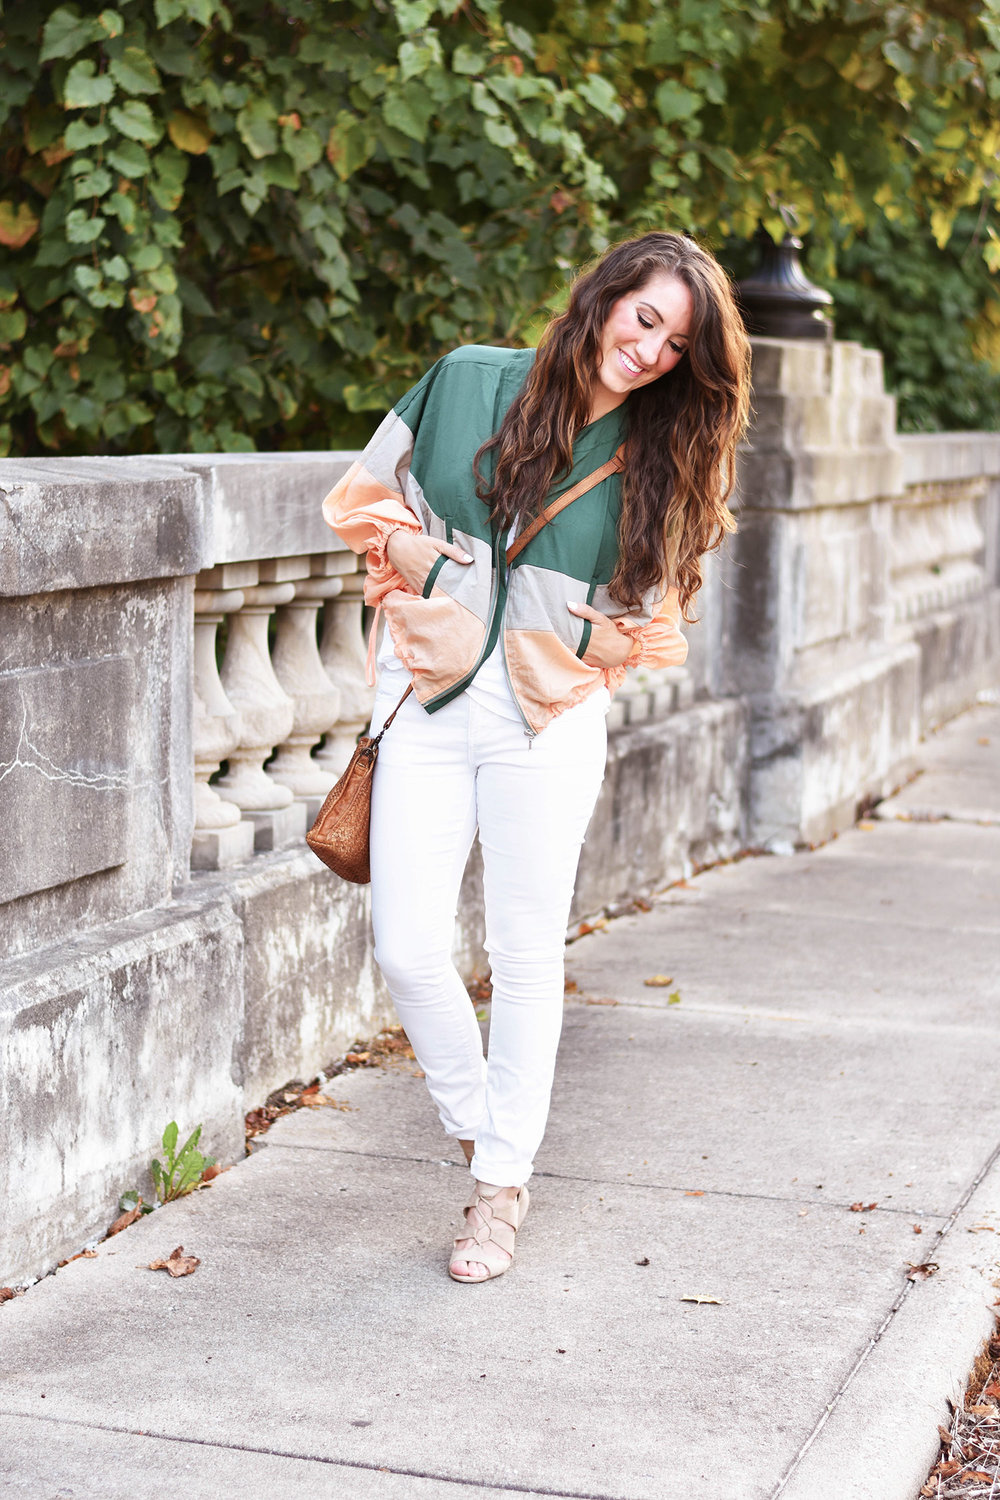 Anthropologie jacket [ similar , but love  this one  and  this one ],tank [ classic ], jeans [ perfect fall sateen white ], bag [ similar , but crushing on  this ] //heels [ heart eyes for this pair , but similar  here ] //  MAC lipstick in Lovelorn